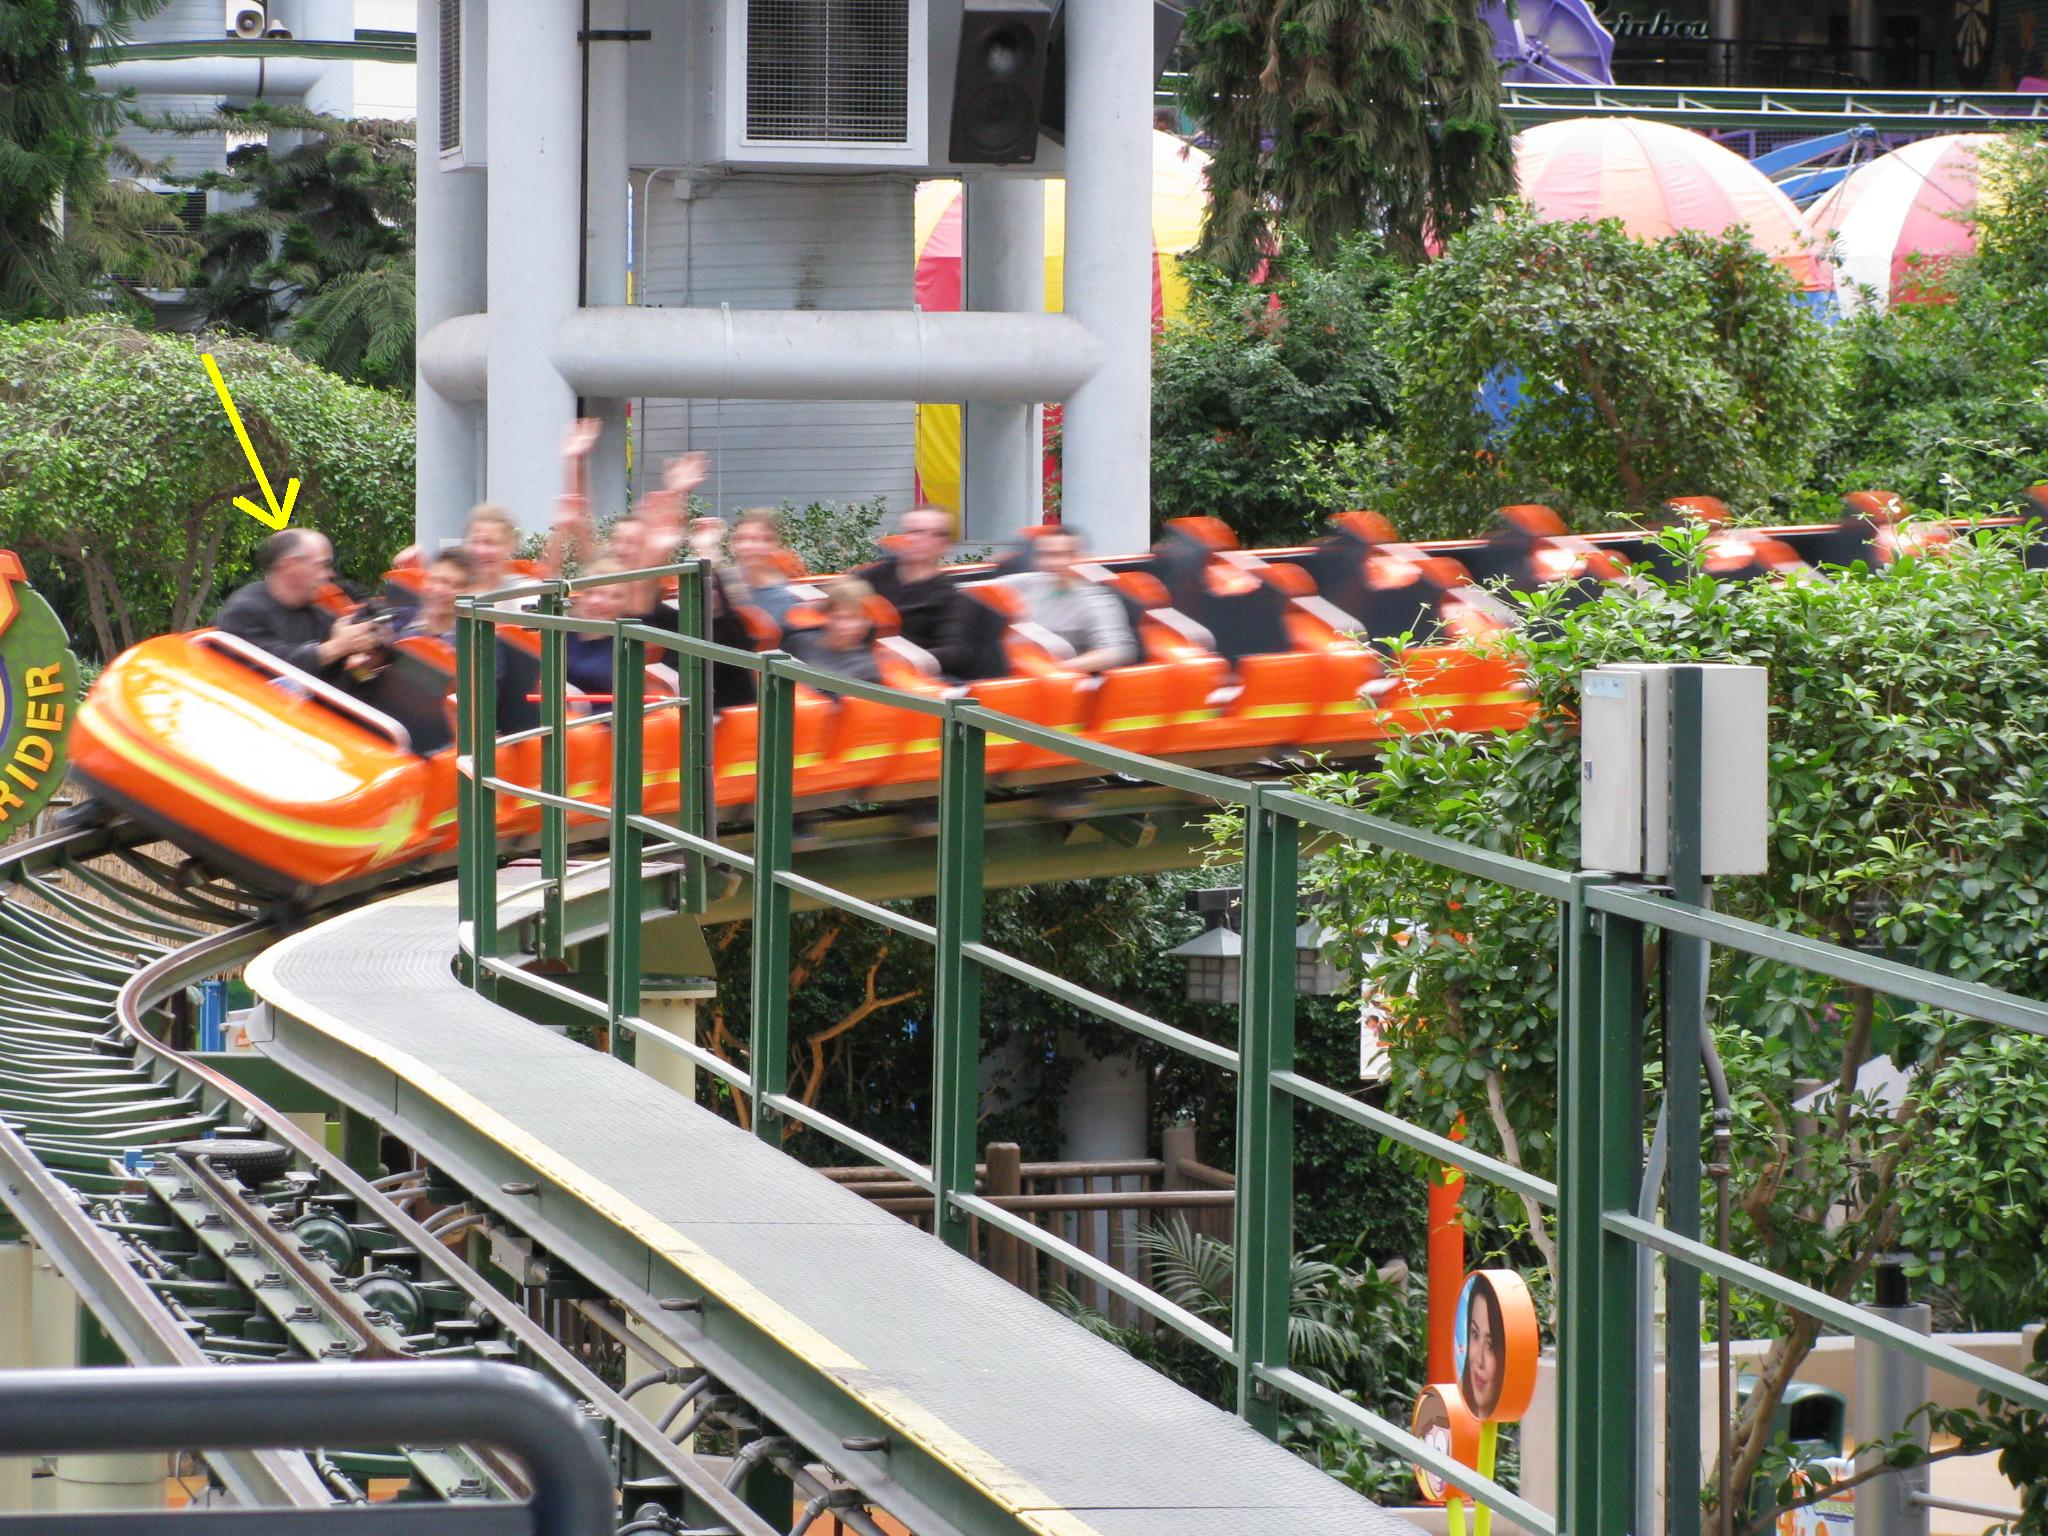 Ever filmed video on a rollercoaster?